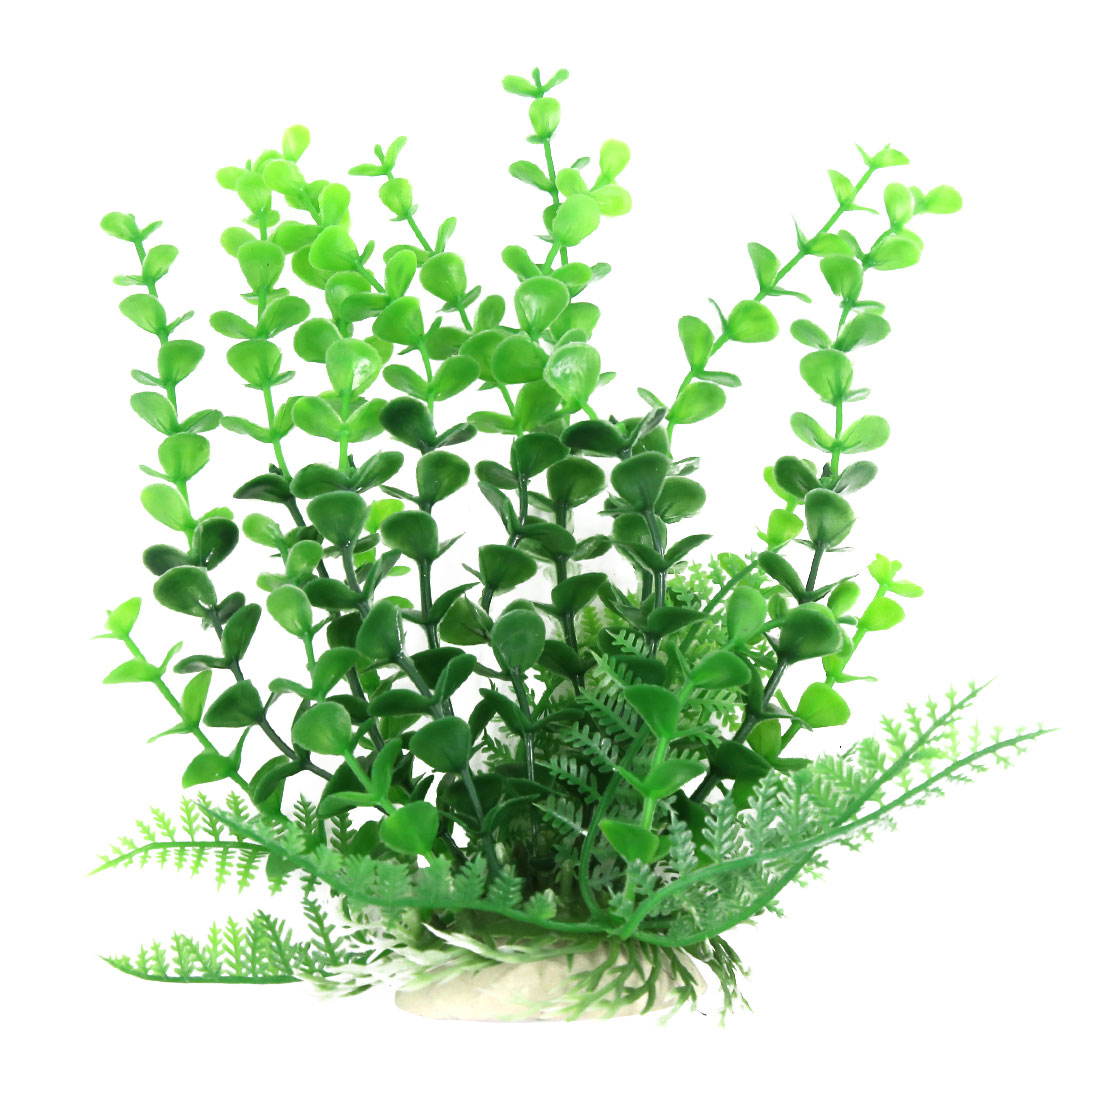 Aquarium Landscape Fish Green Decoration Atificial Plastic Plant for Betta 20cm